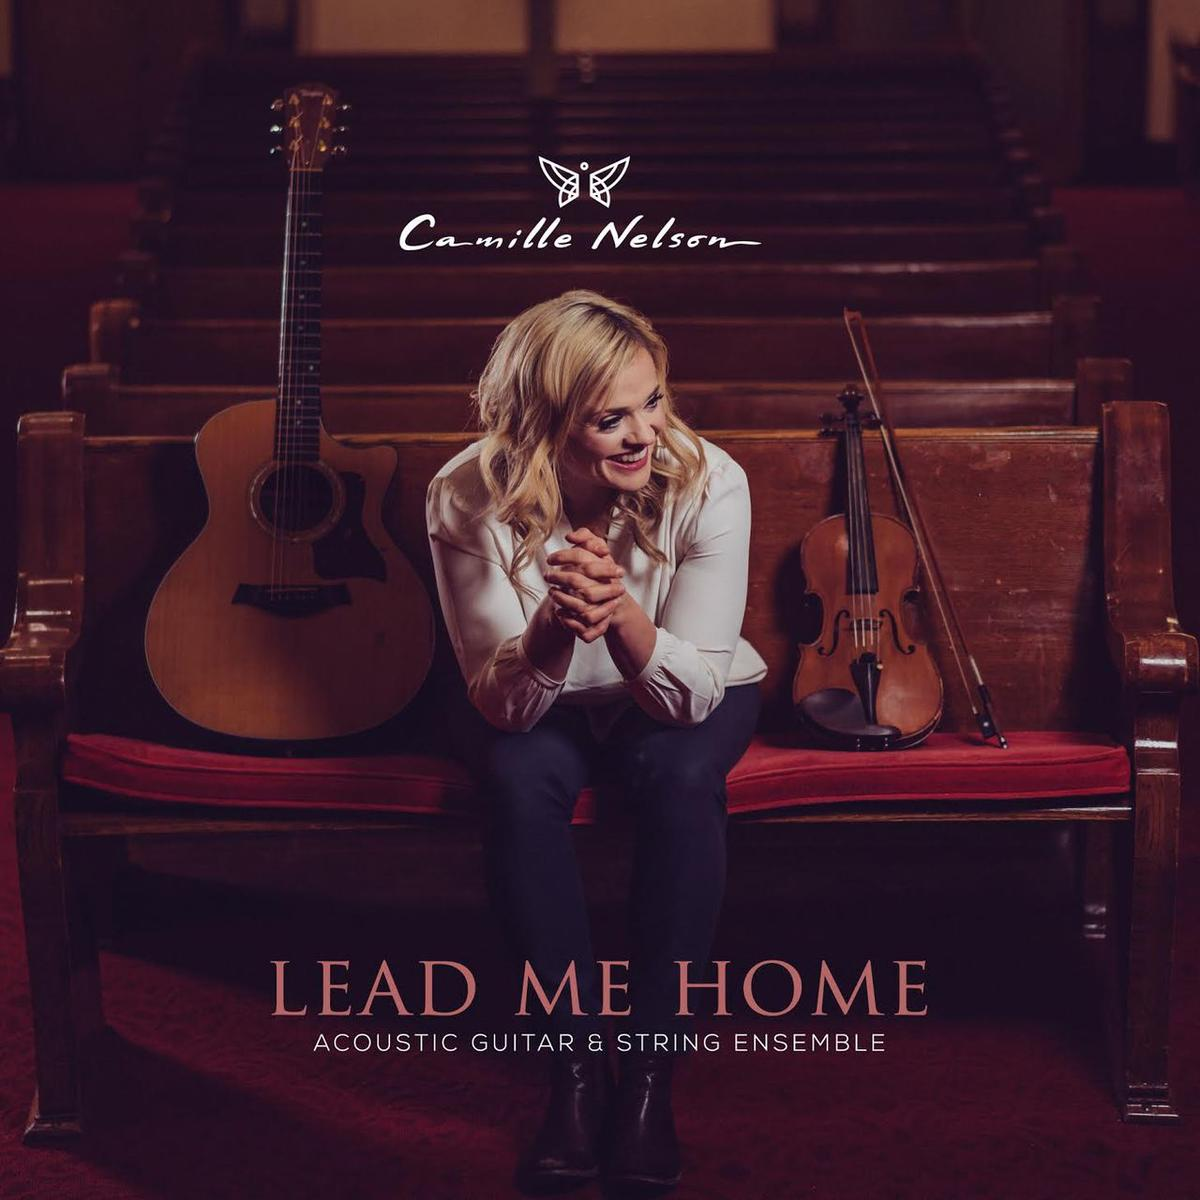 There is nothing like home': LDS musician Camille Nelson